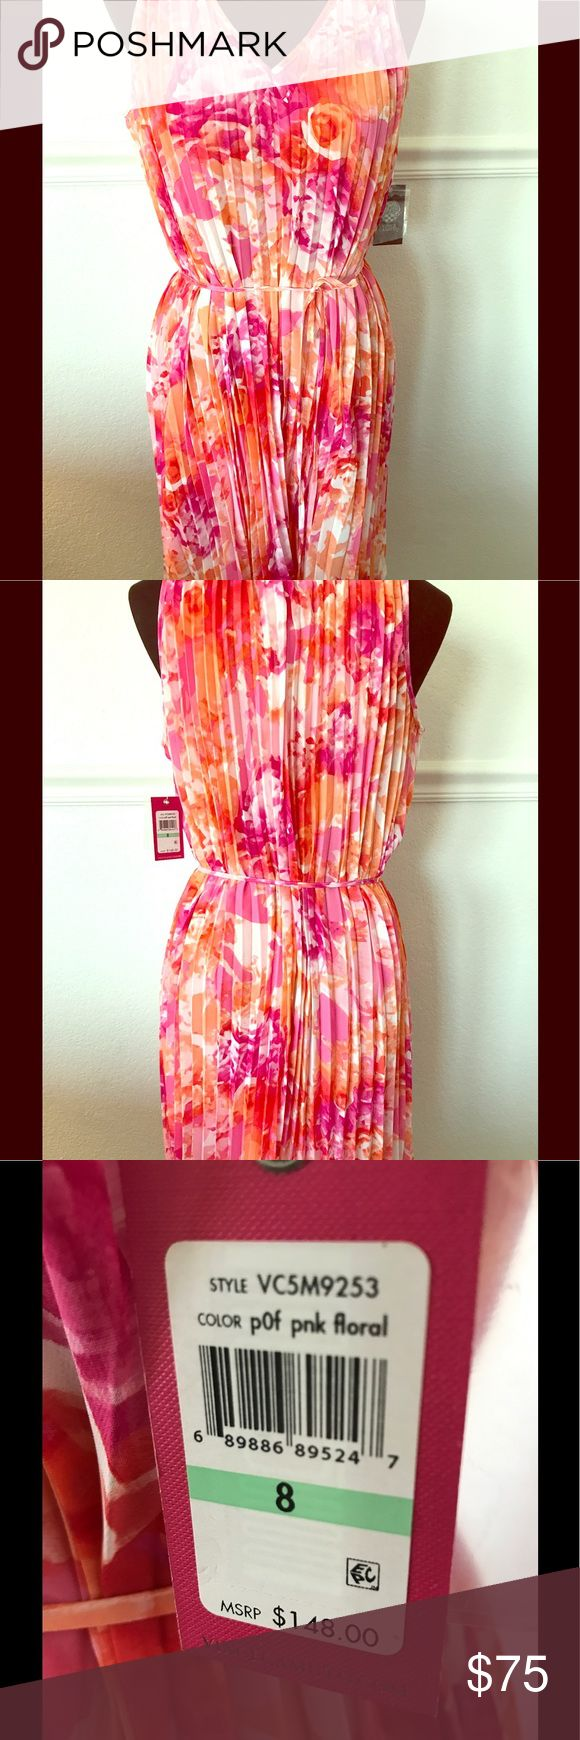 Floral and coral, flirty and fun dress! NWT Vince Camuto dress for day or night.  Would look fantastic with metallic, strappy heels!  Gorgeously girly! Vince Camuto Dresses